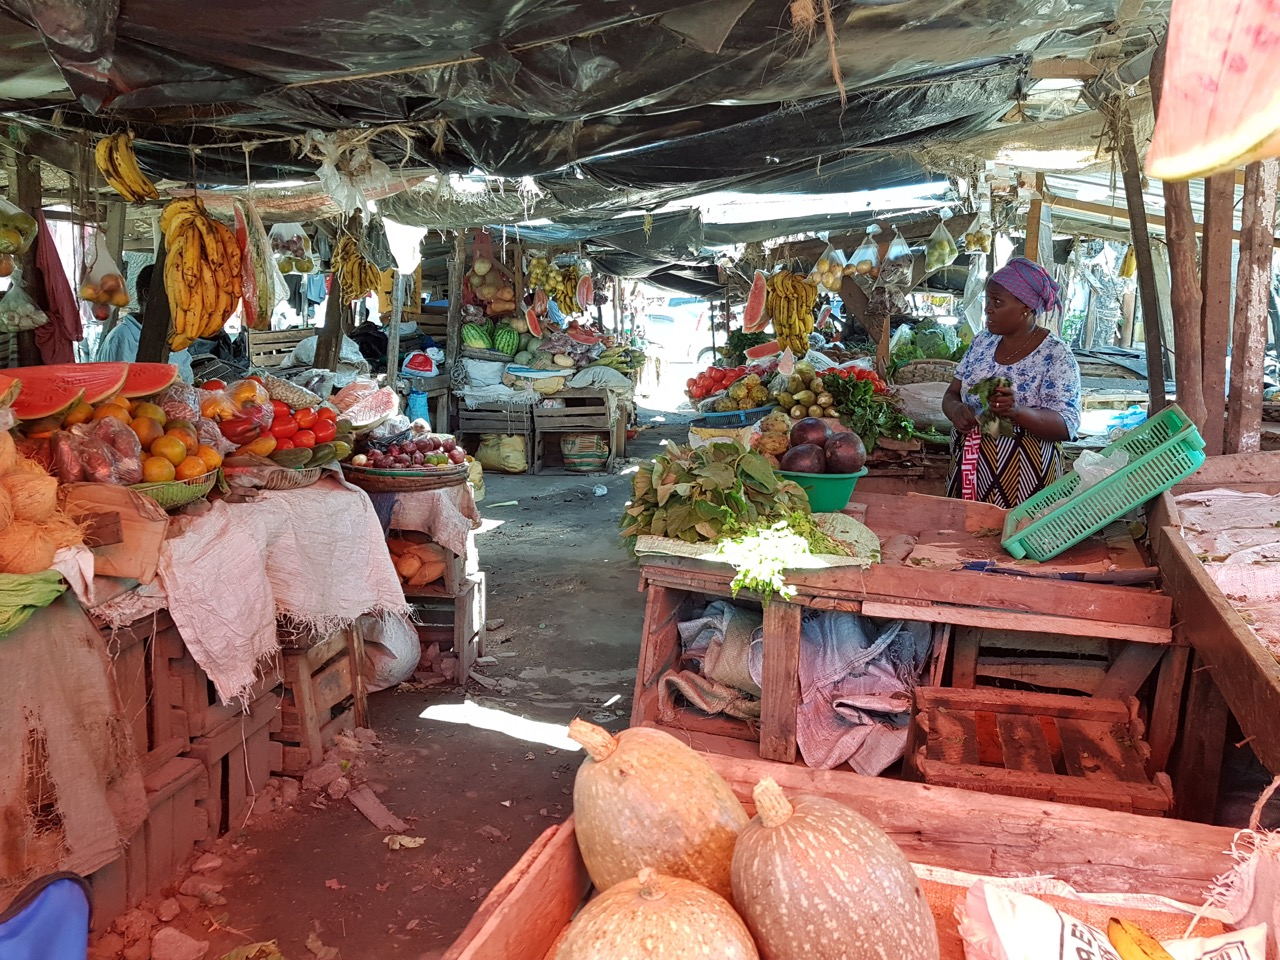 A fruit and vegetable market on Mtwapa's main road